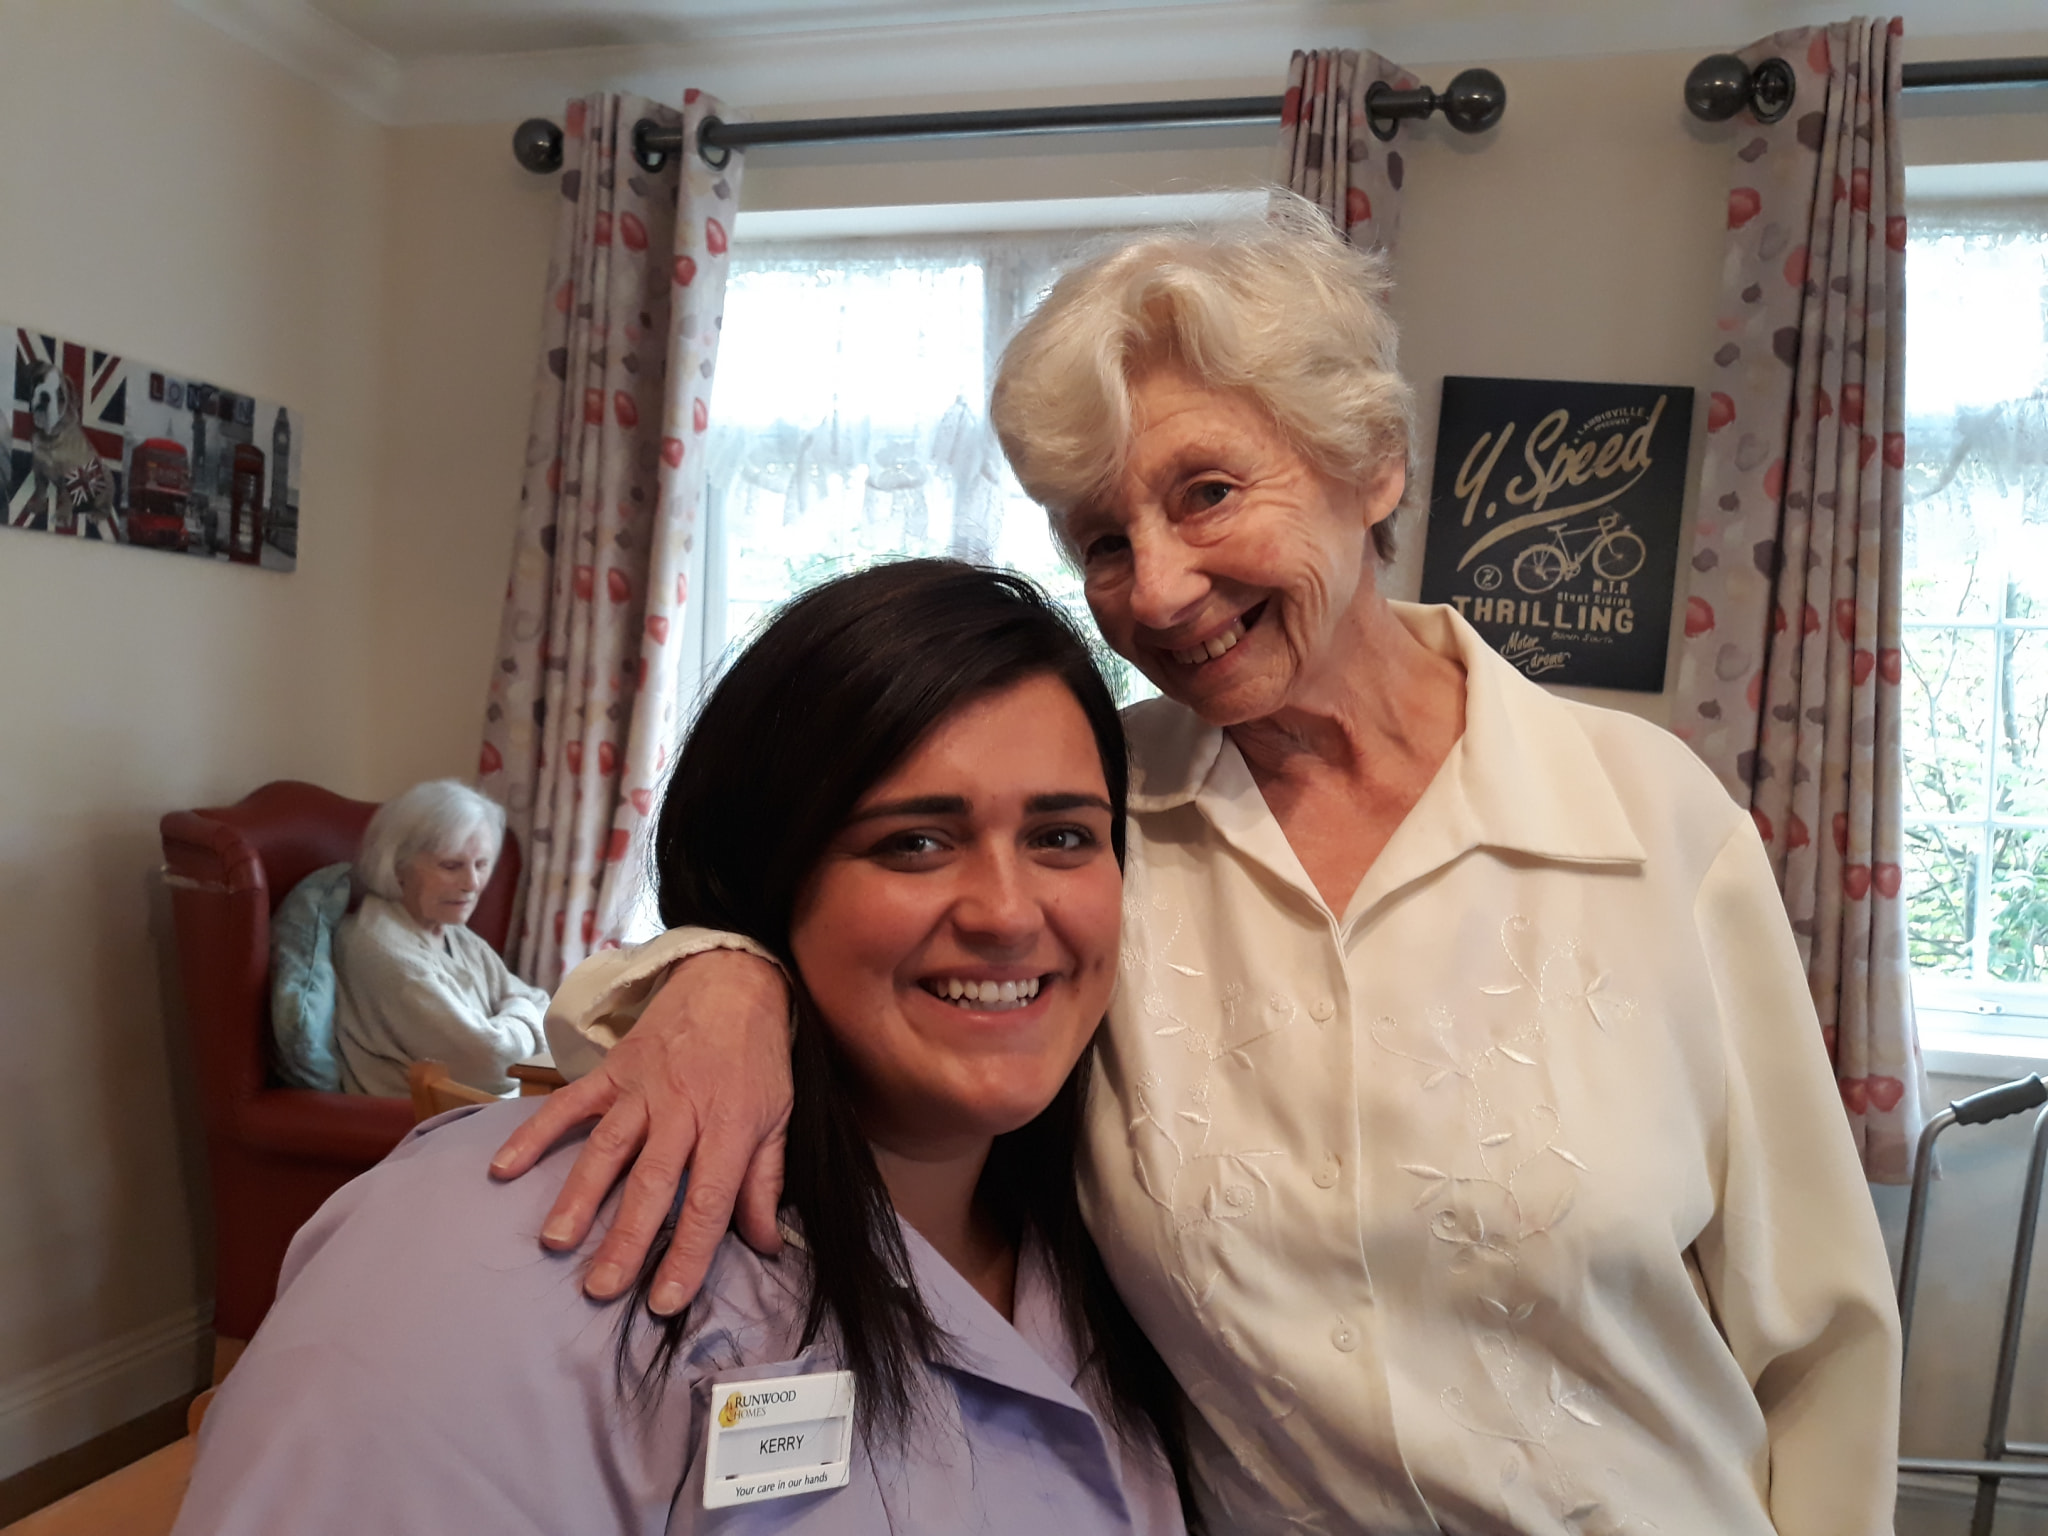 Carer and Resident at Evelyn May House